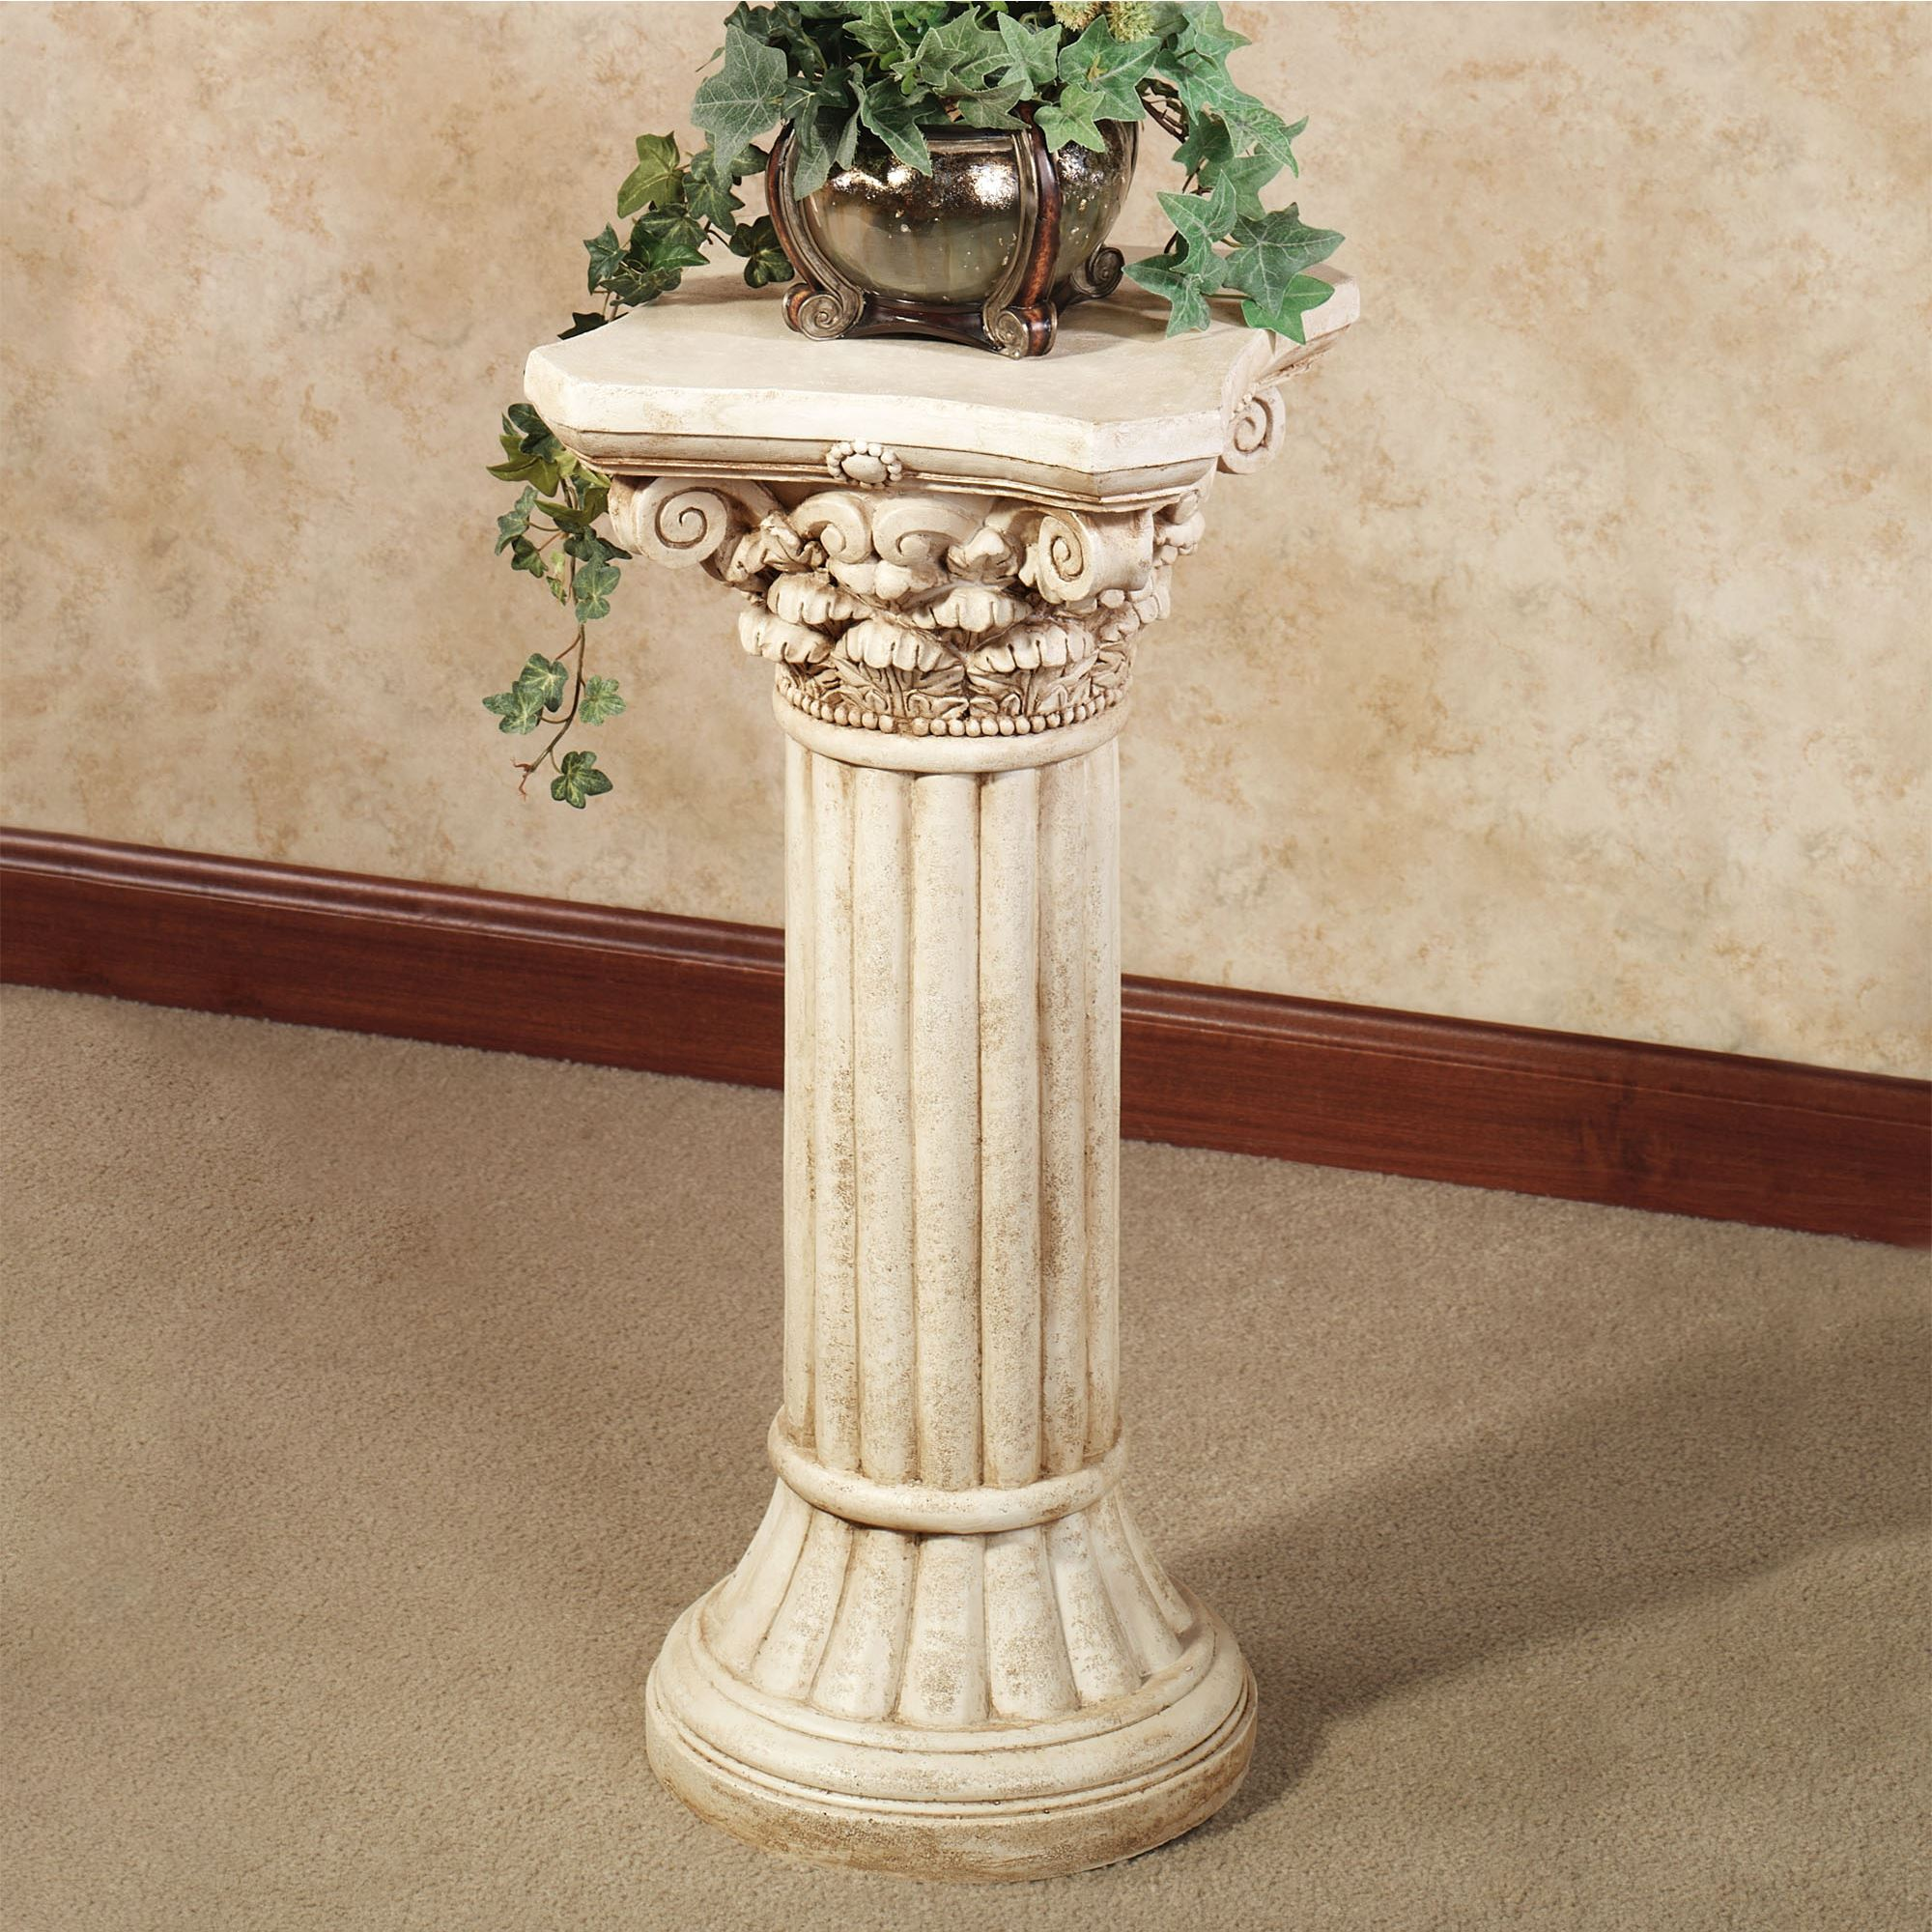 Lovely Corinthian Indoor Outdoor Display Column Pedestal CP69